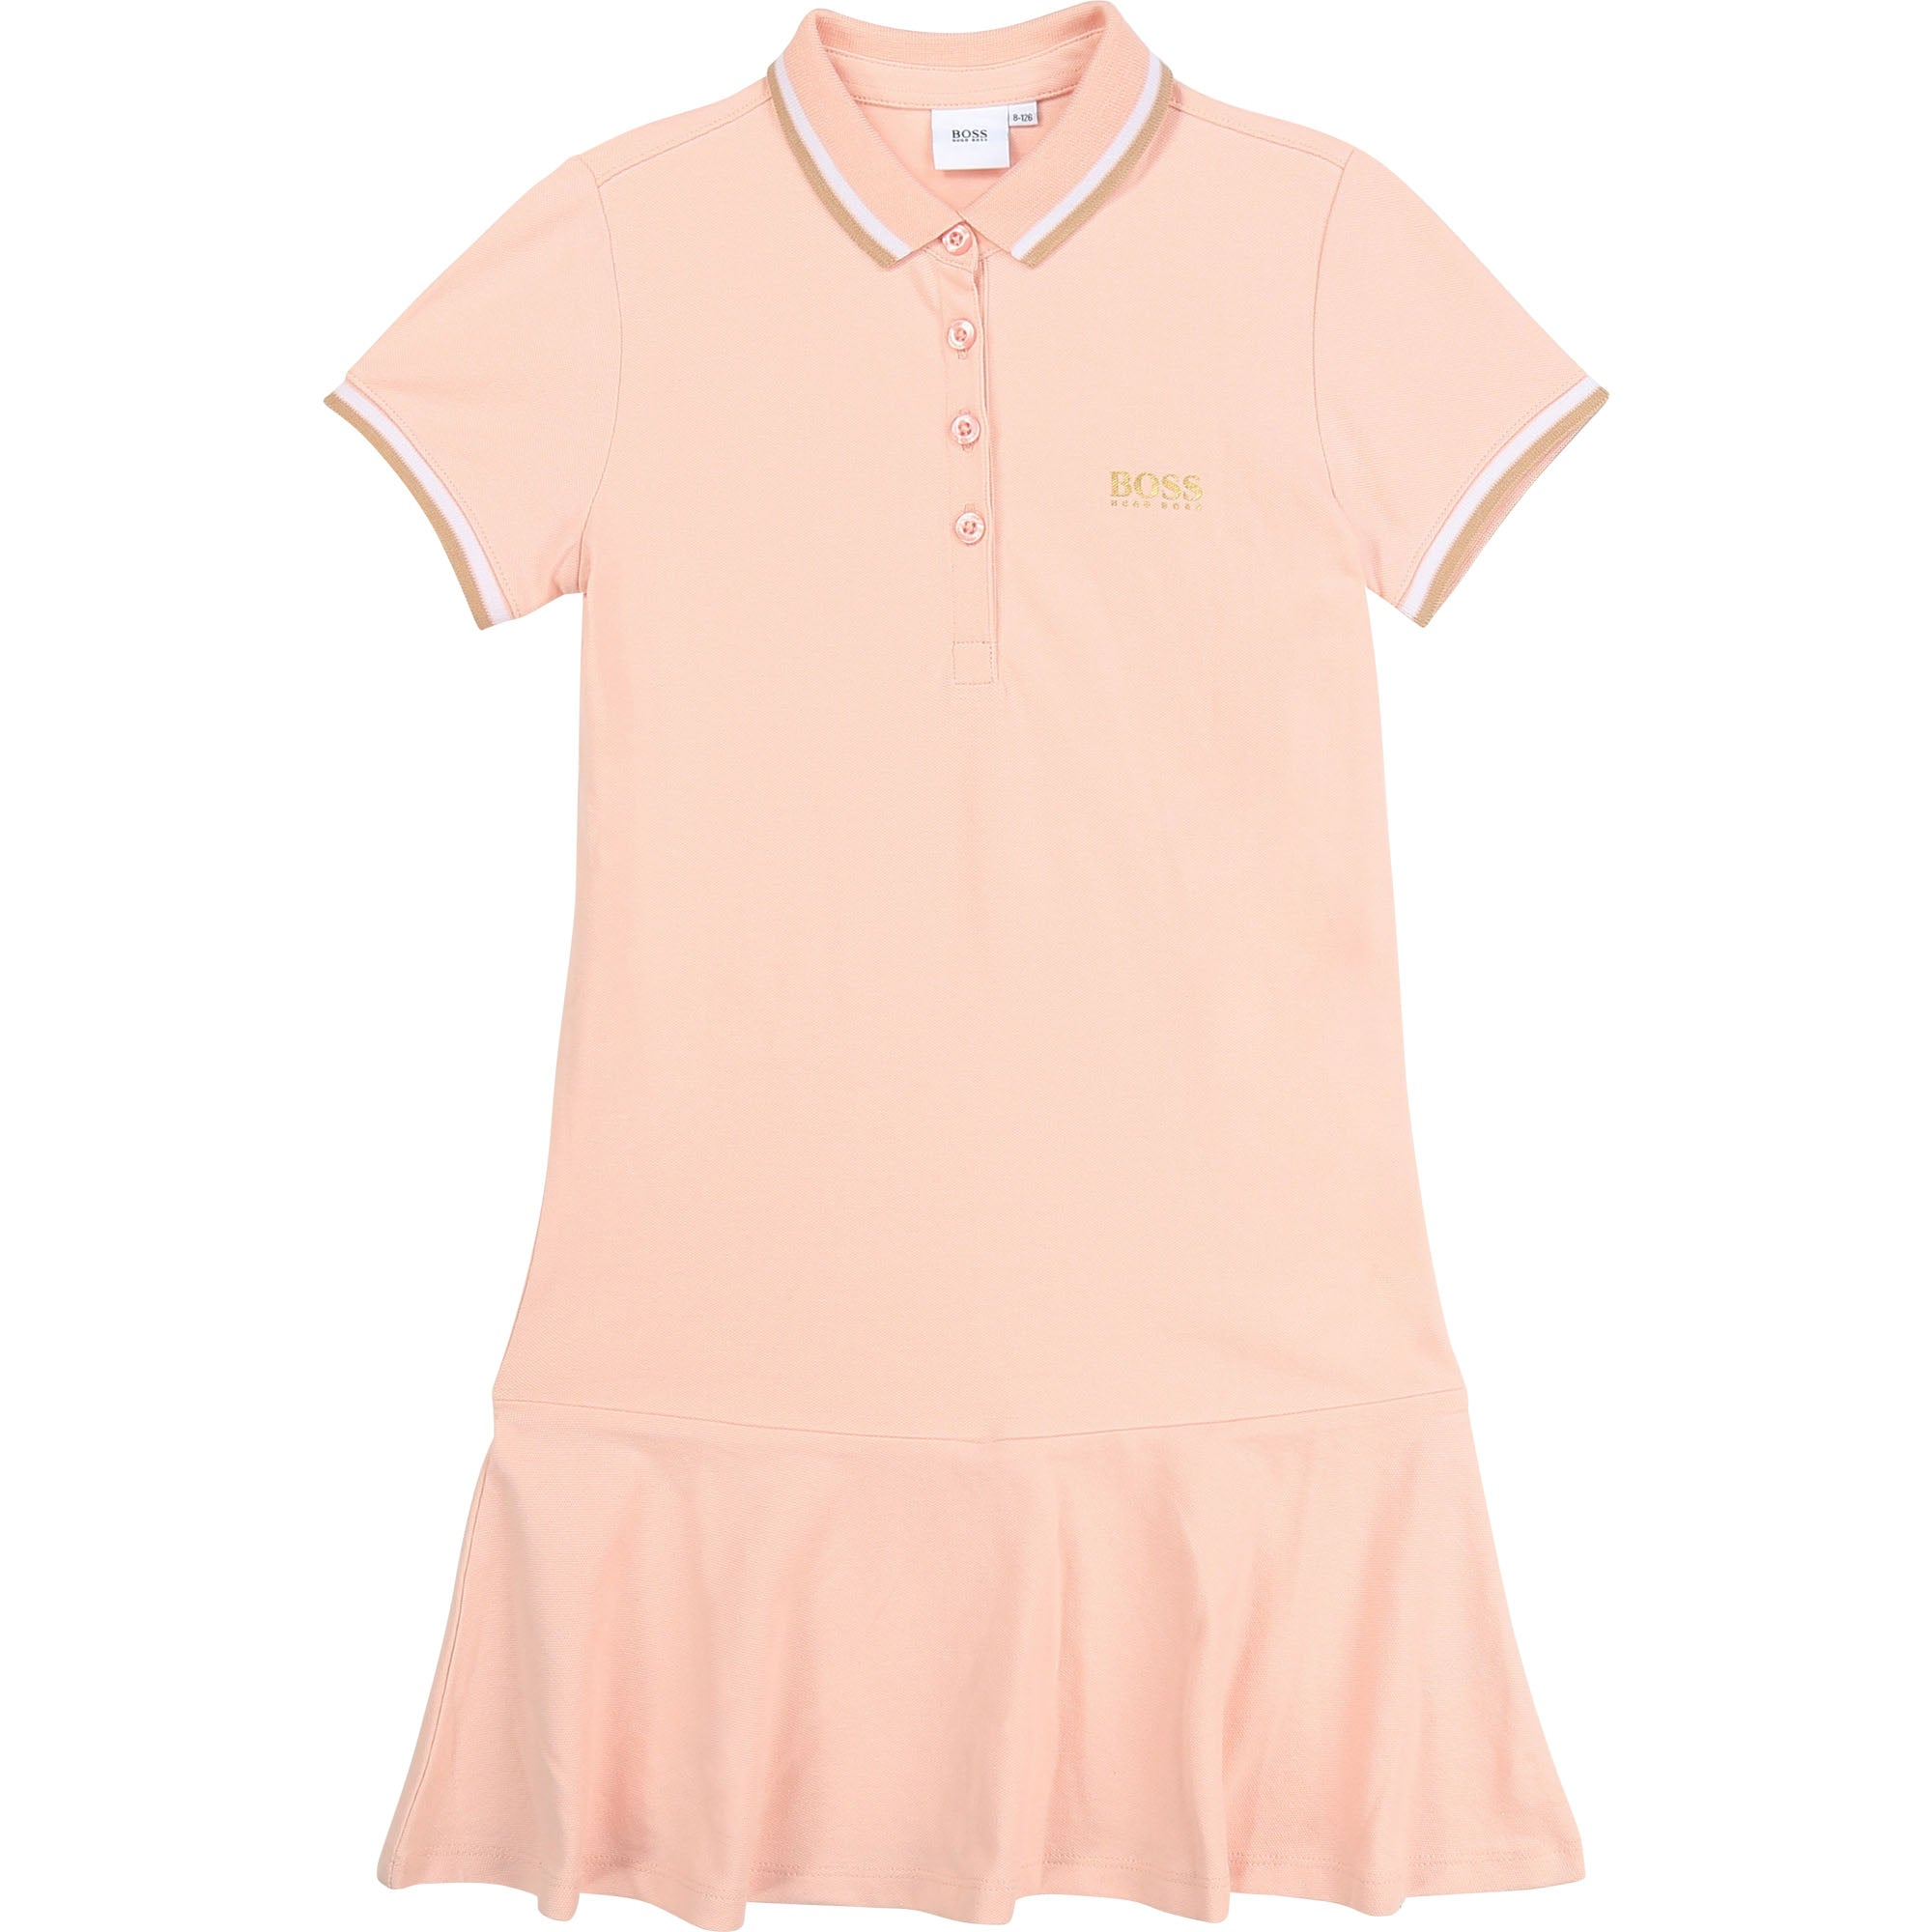 HUGO BOSS J12191 GIRLS DRESS PALE PINK